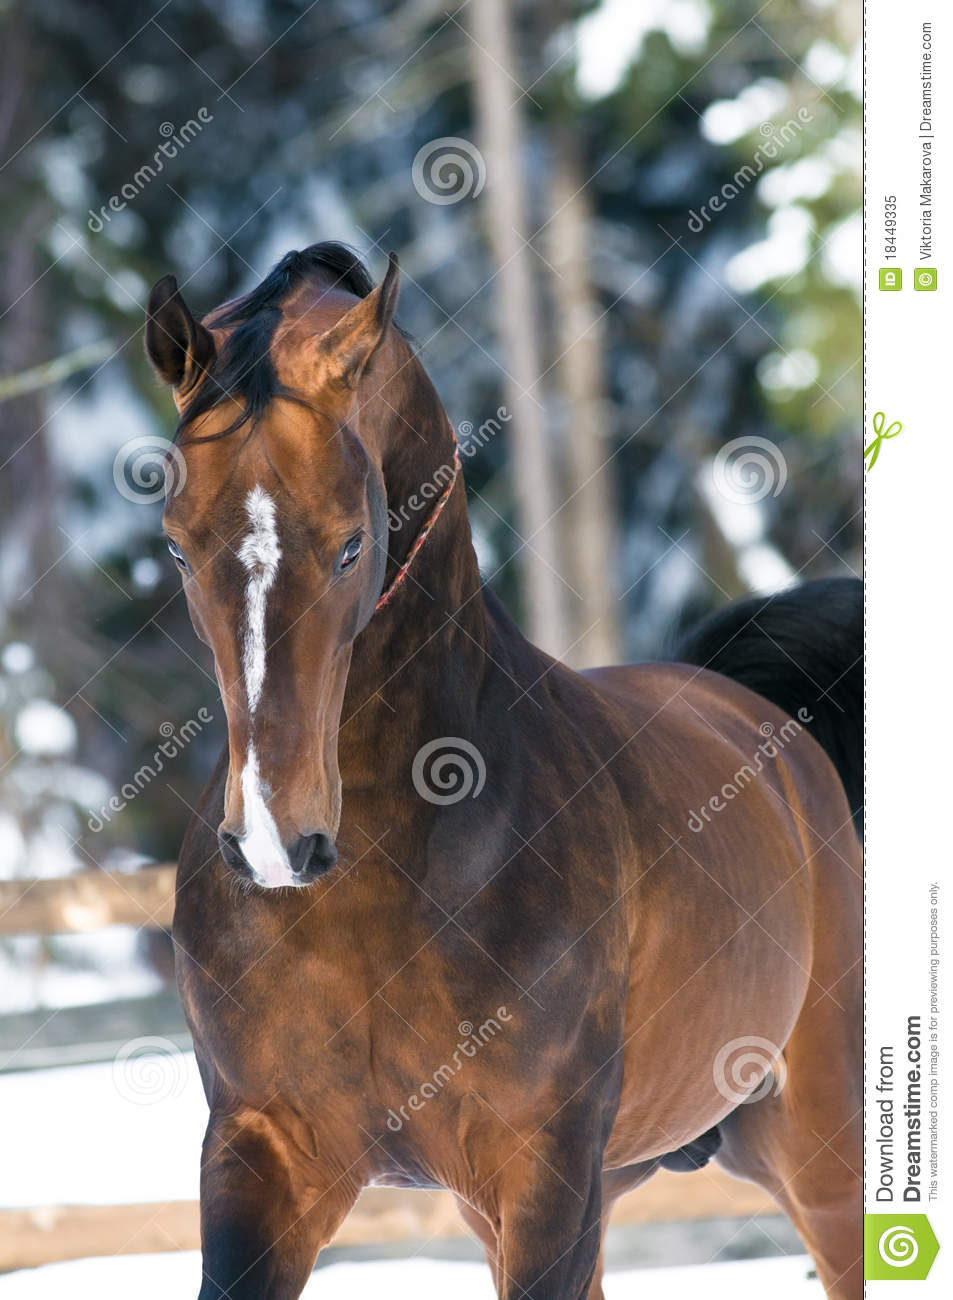 Golden Akhal-teke horse portrait in winter